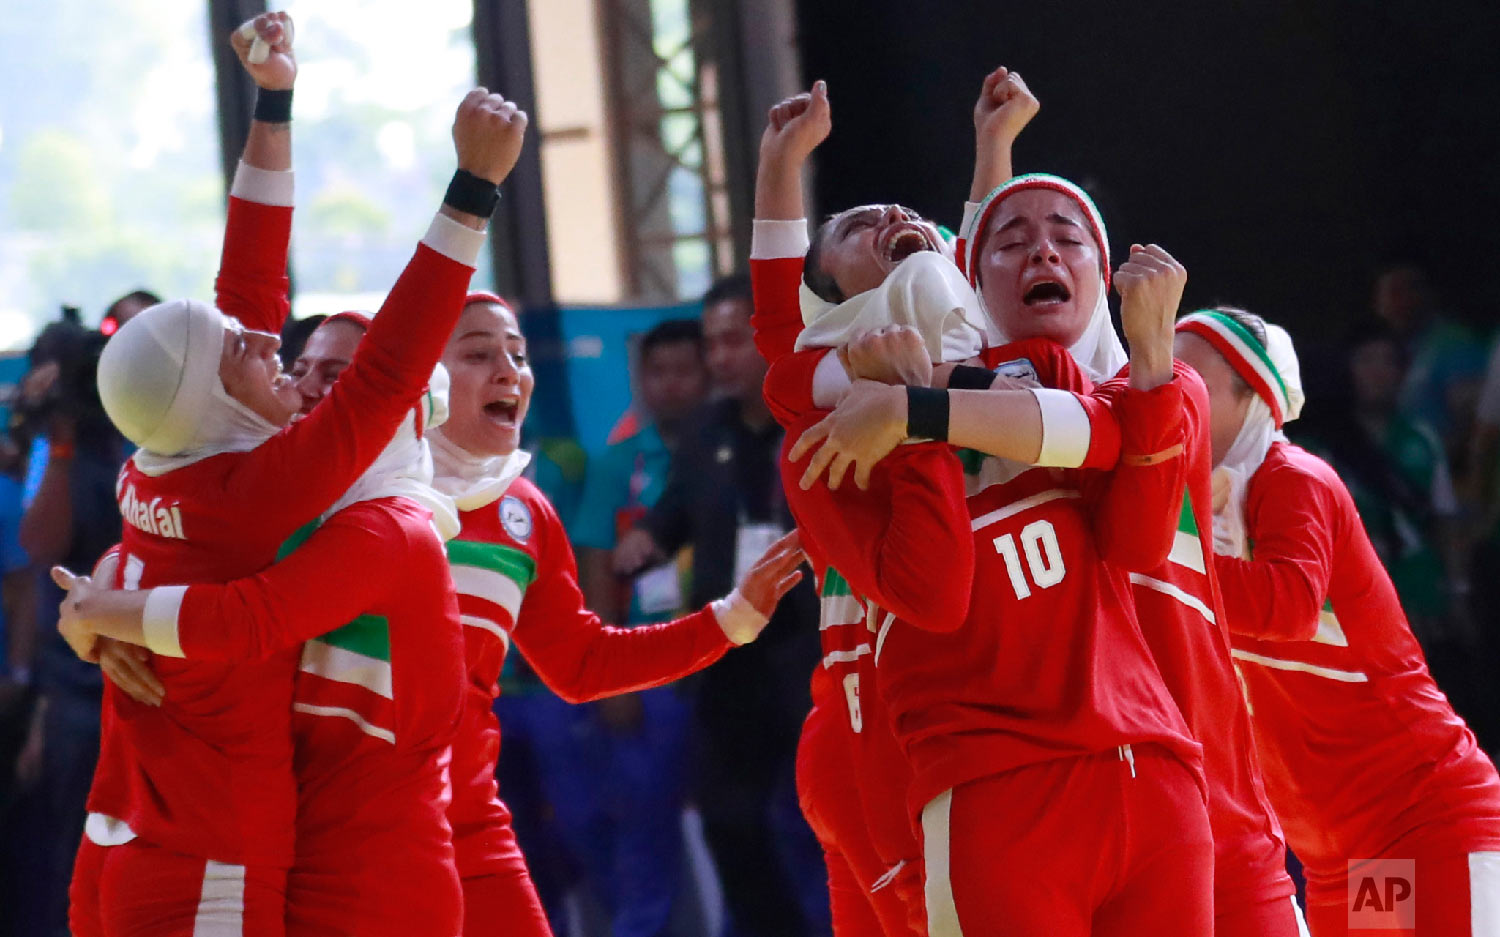 Iran's team, in red, react after defeating India's during at the women's team Kabaddi gold medal match at the 18th Asian Games in Jakarta, Indonesia, Friday, Aug. 24, 2018. Iran won gold.(AP Photo/Tatan Syuflana)